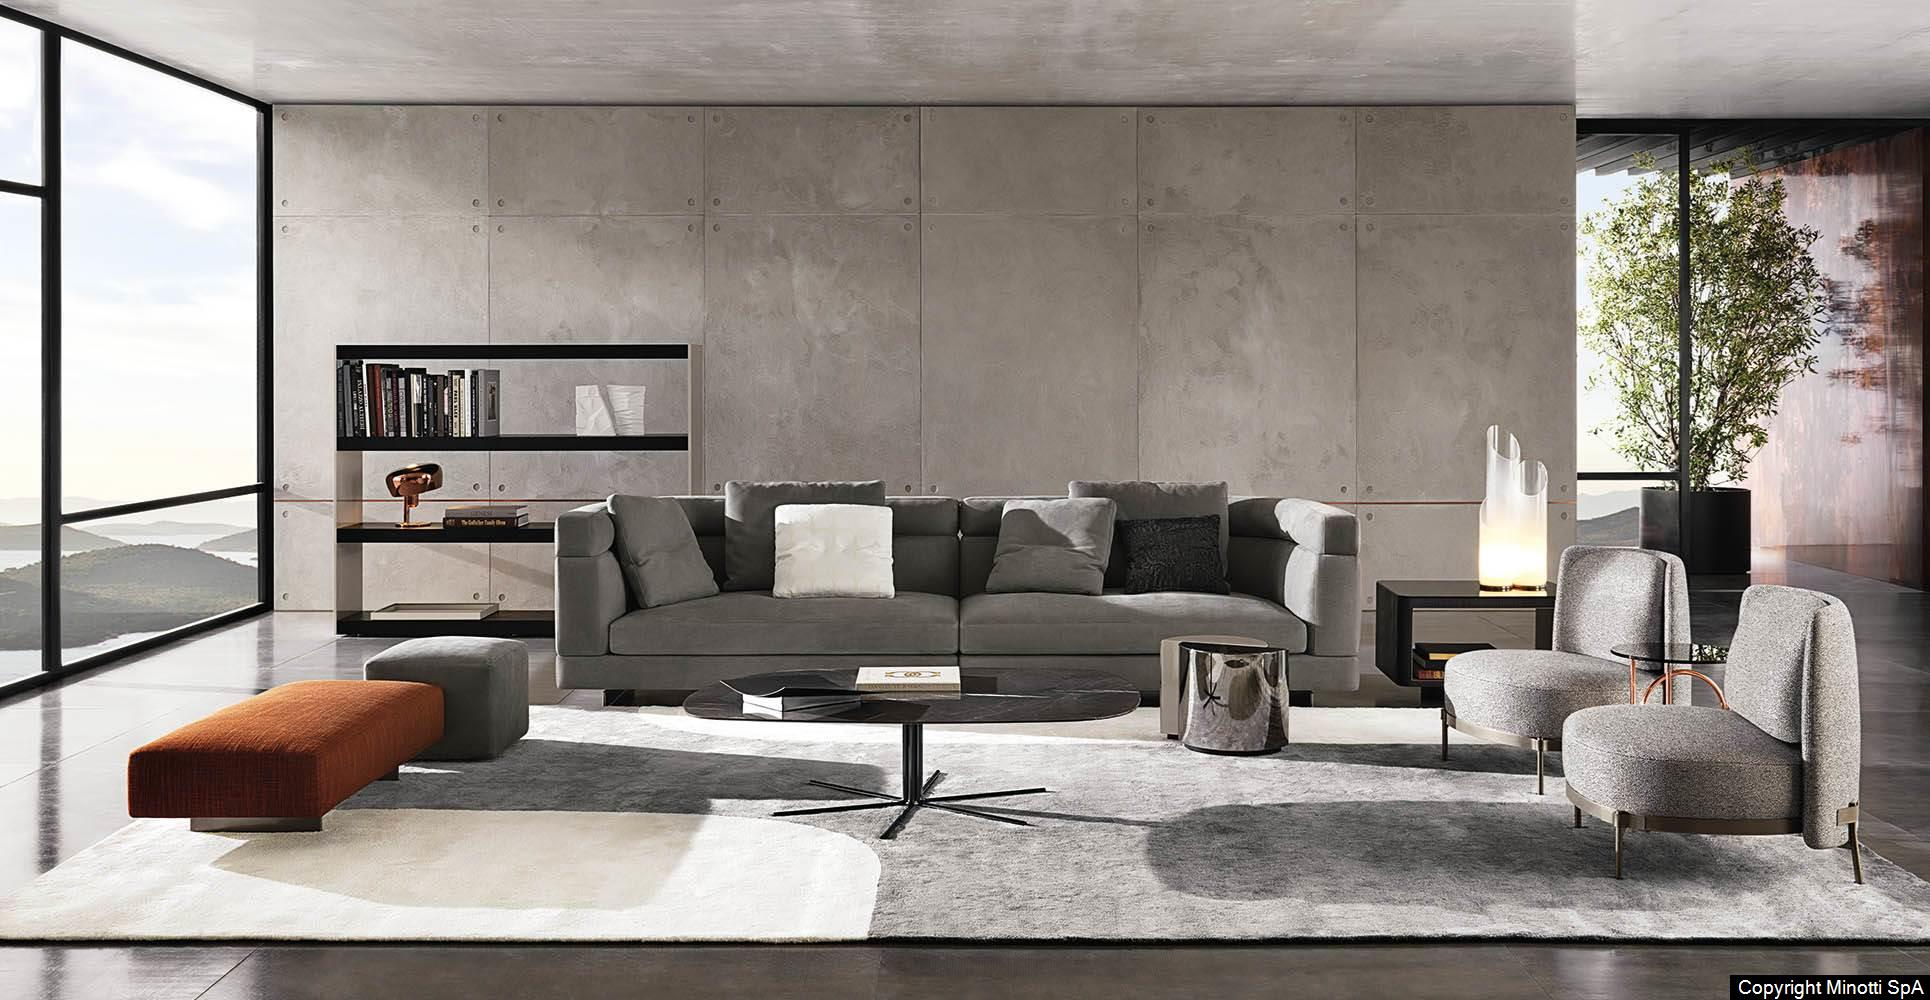 Full Size of Minotti Sofa Kollektion 2018 Bruno Wickart Blog Online Kaufen Erpo Ewald Schillig Modulares Goodlife Machalke Big Weiß Kinderzimmer Mit Boxen Reinigen Sofa Minotti Sofa